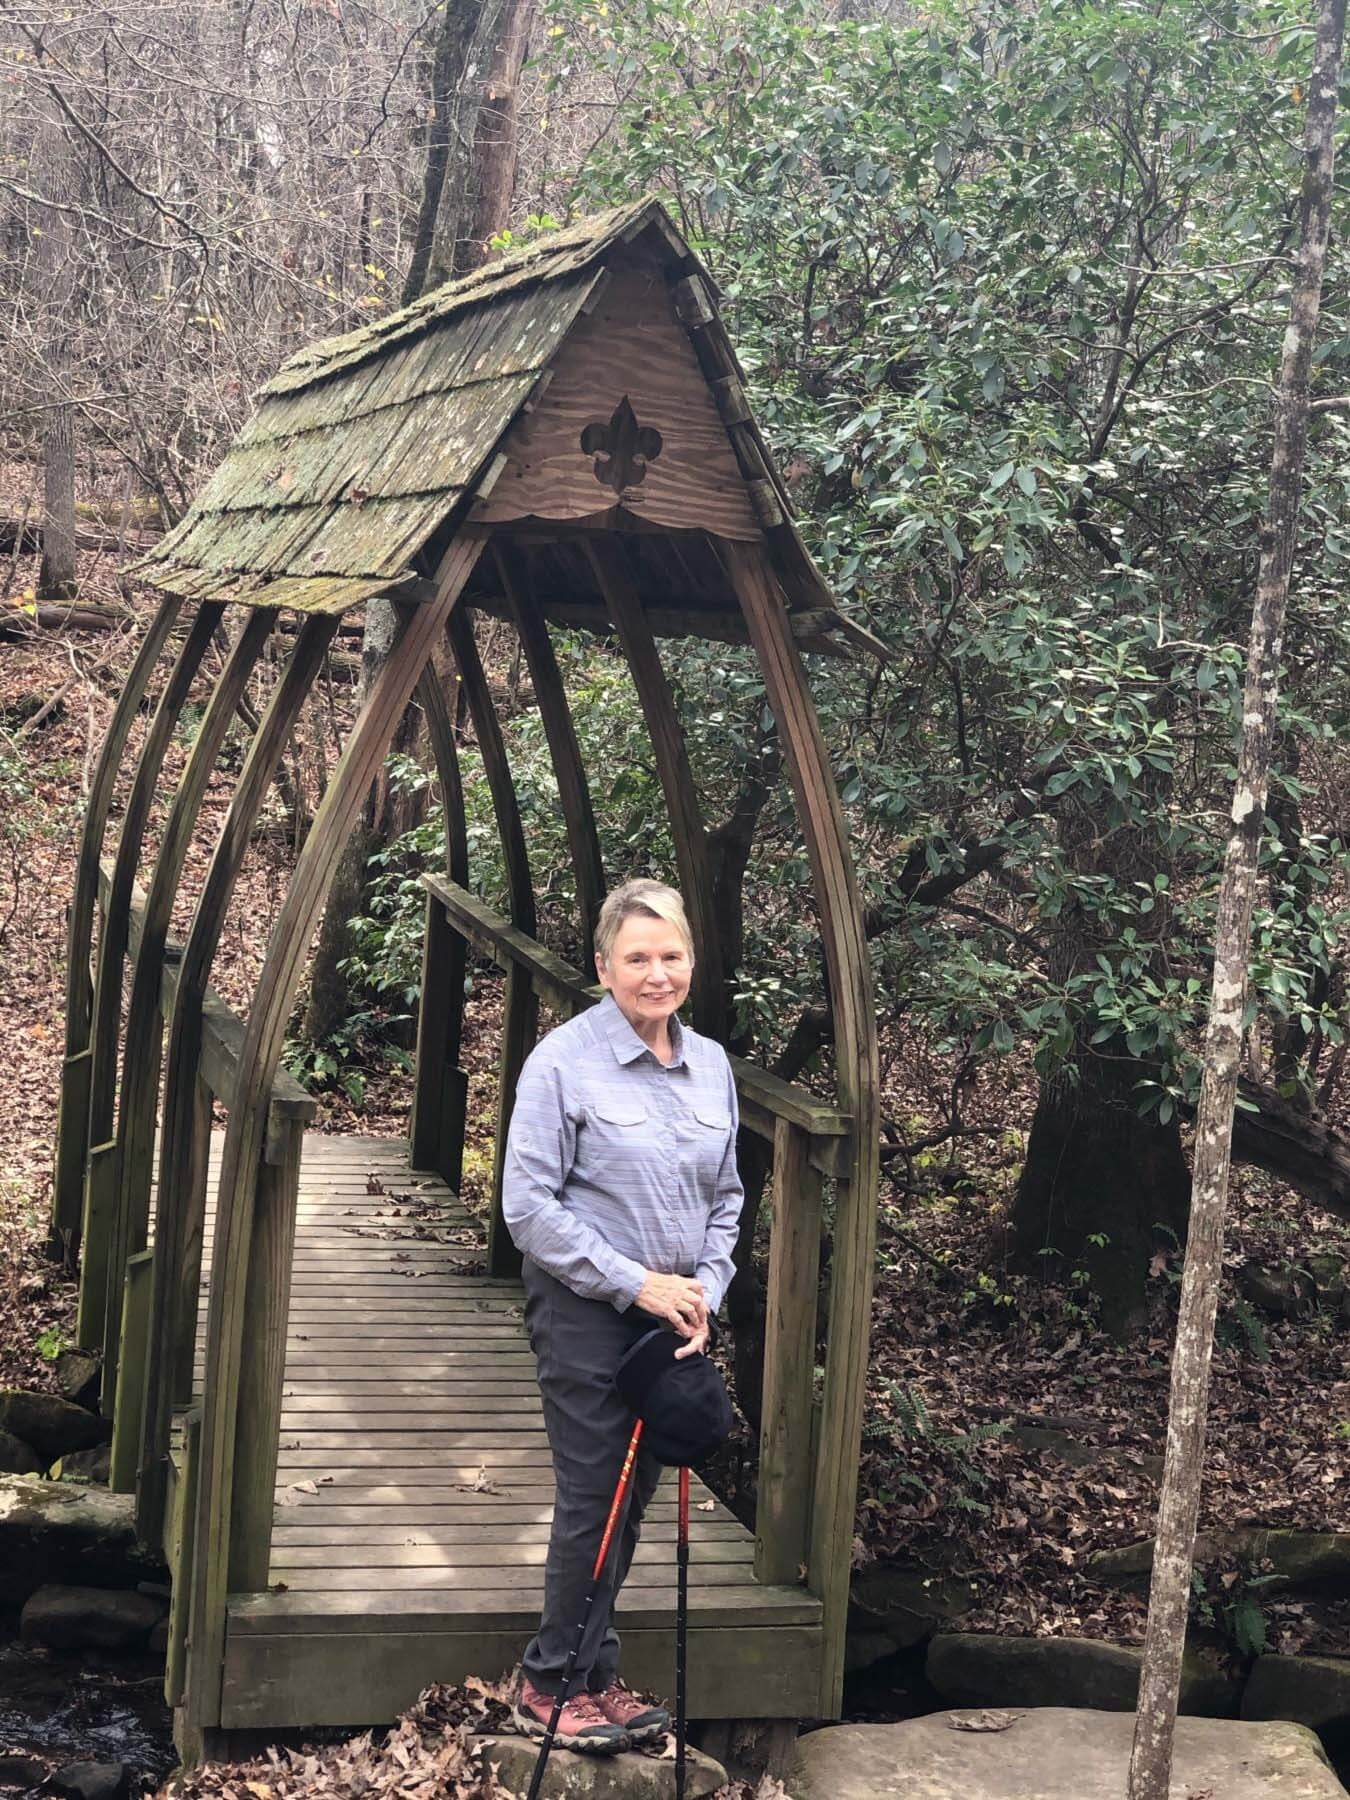 Gayle Ray, hiking outdoors